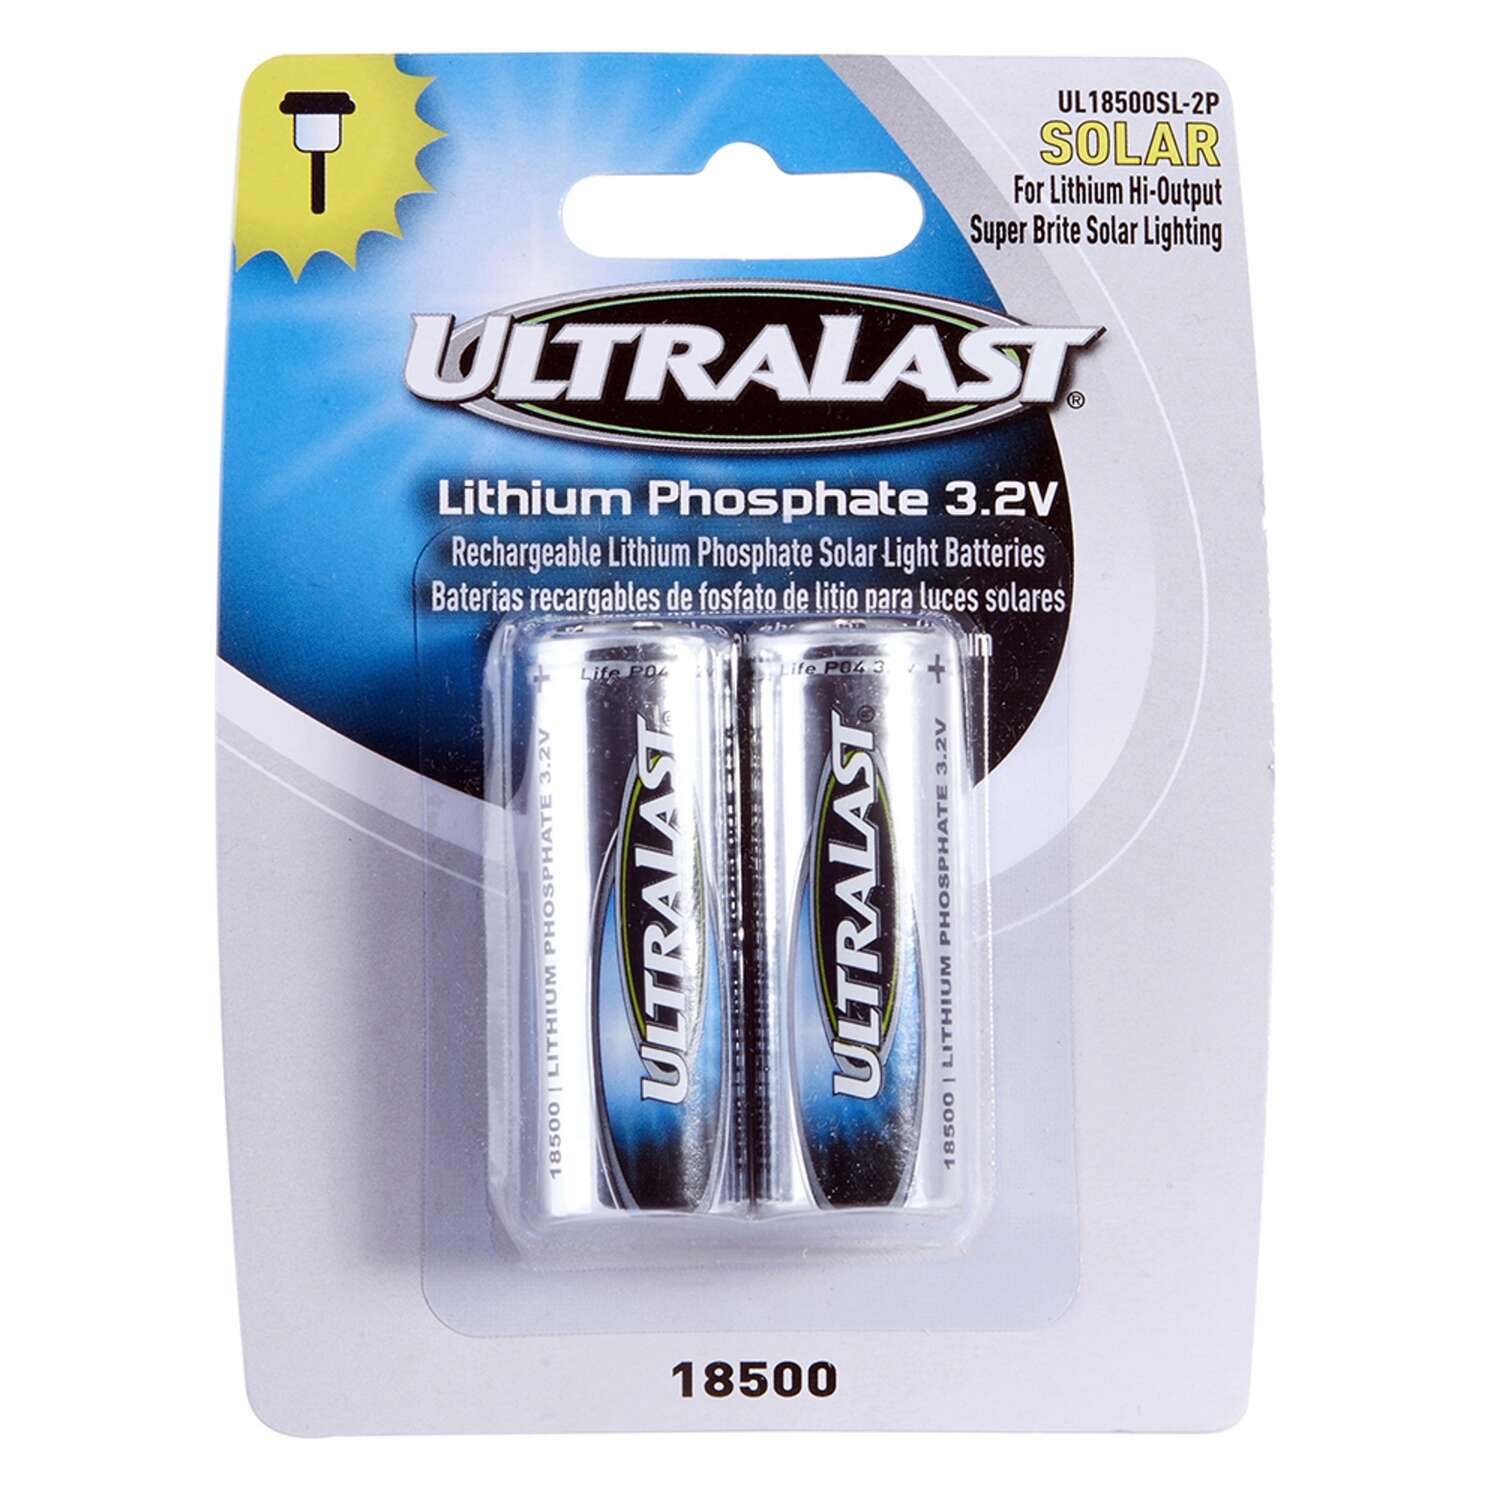 Ultralast Lithium Phosphate 18500 3.2 volt Solar Rechargeable Battery 2 pk